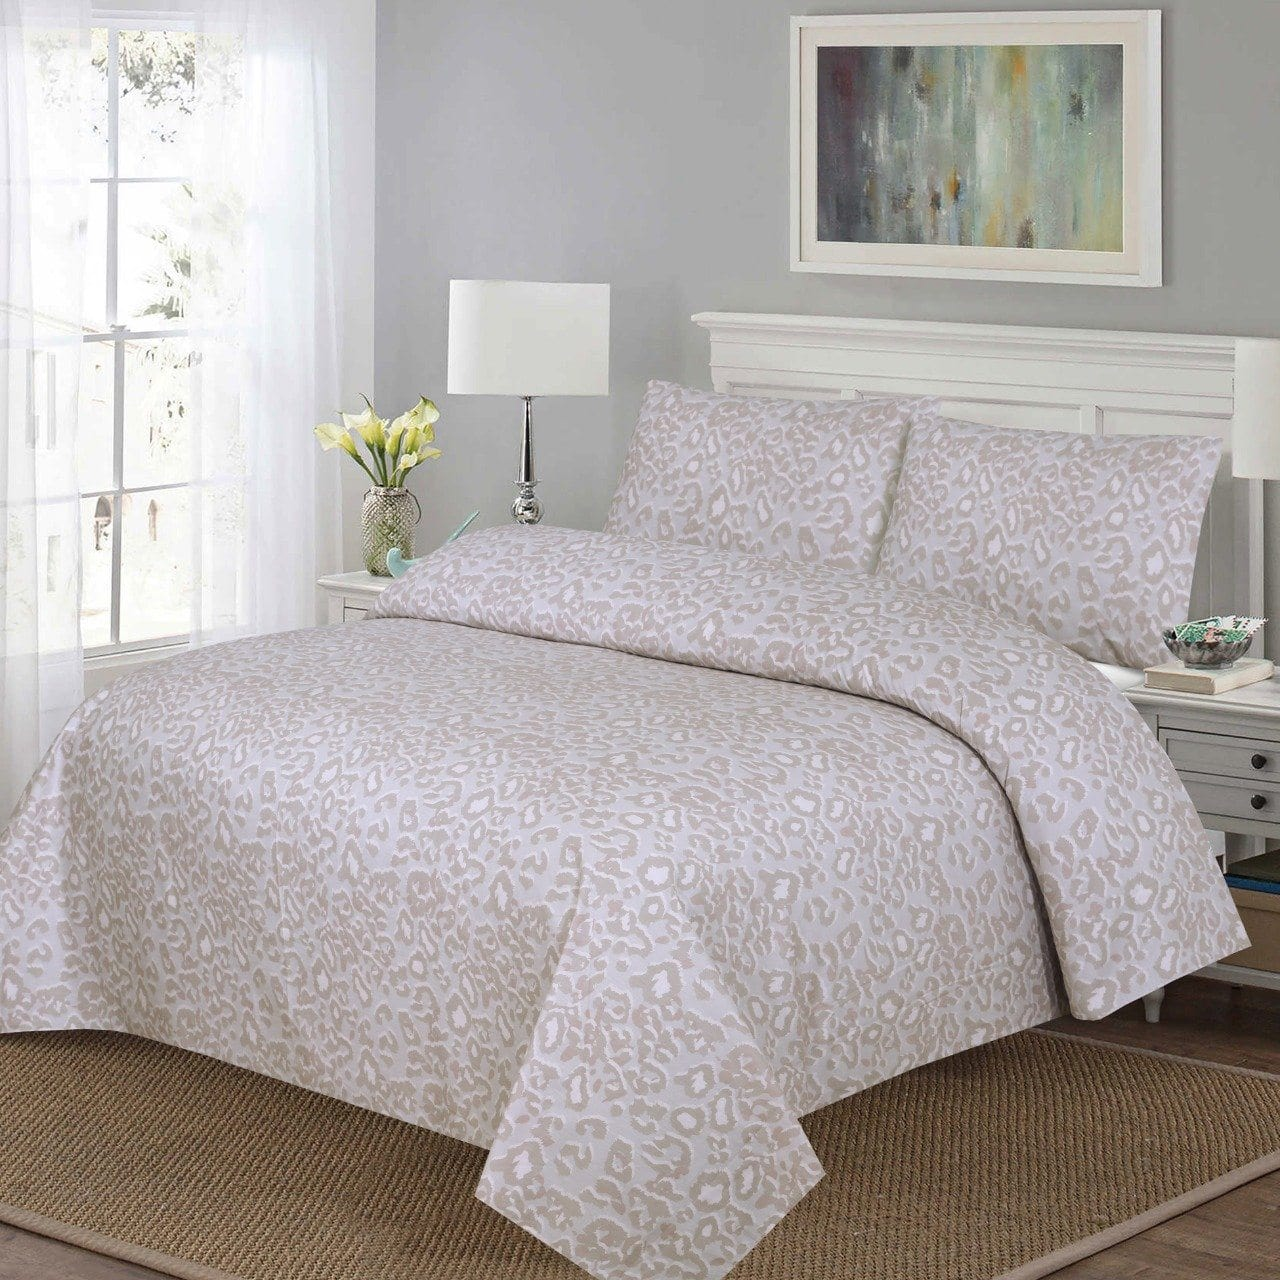 Grace D216-Cotton PC King Size Bedsheet with 2 Pillow Covers.